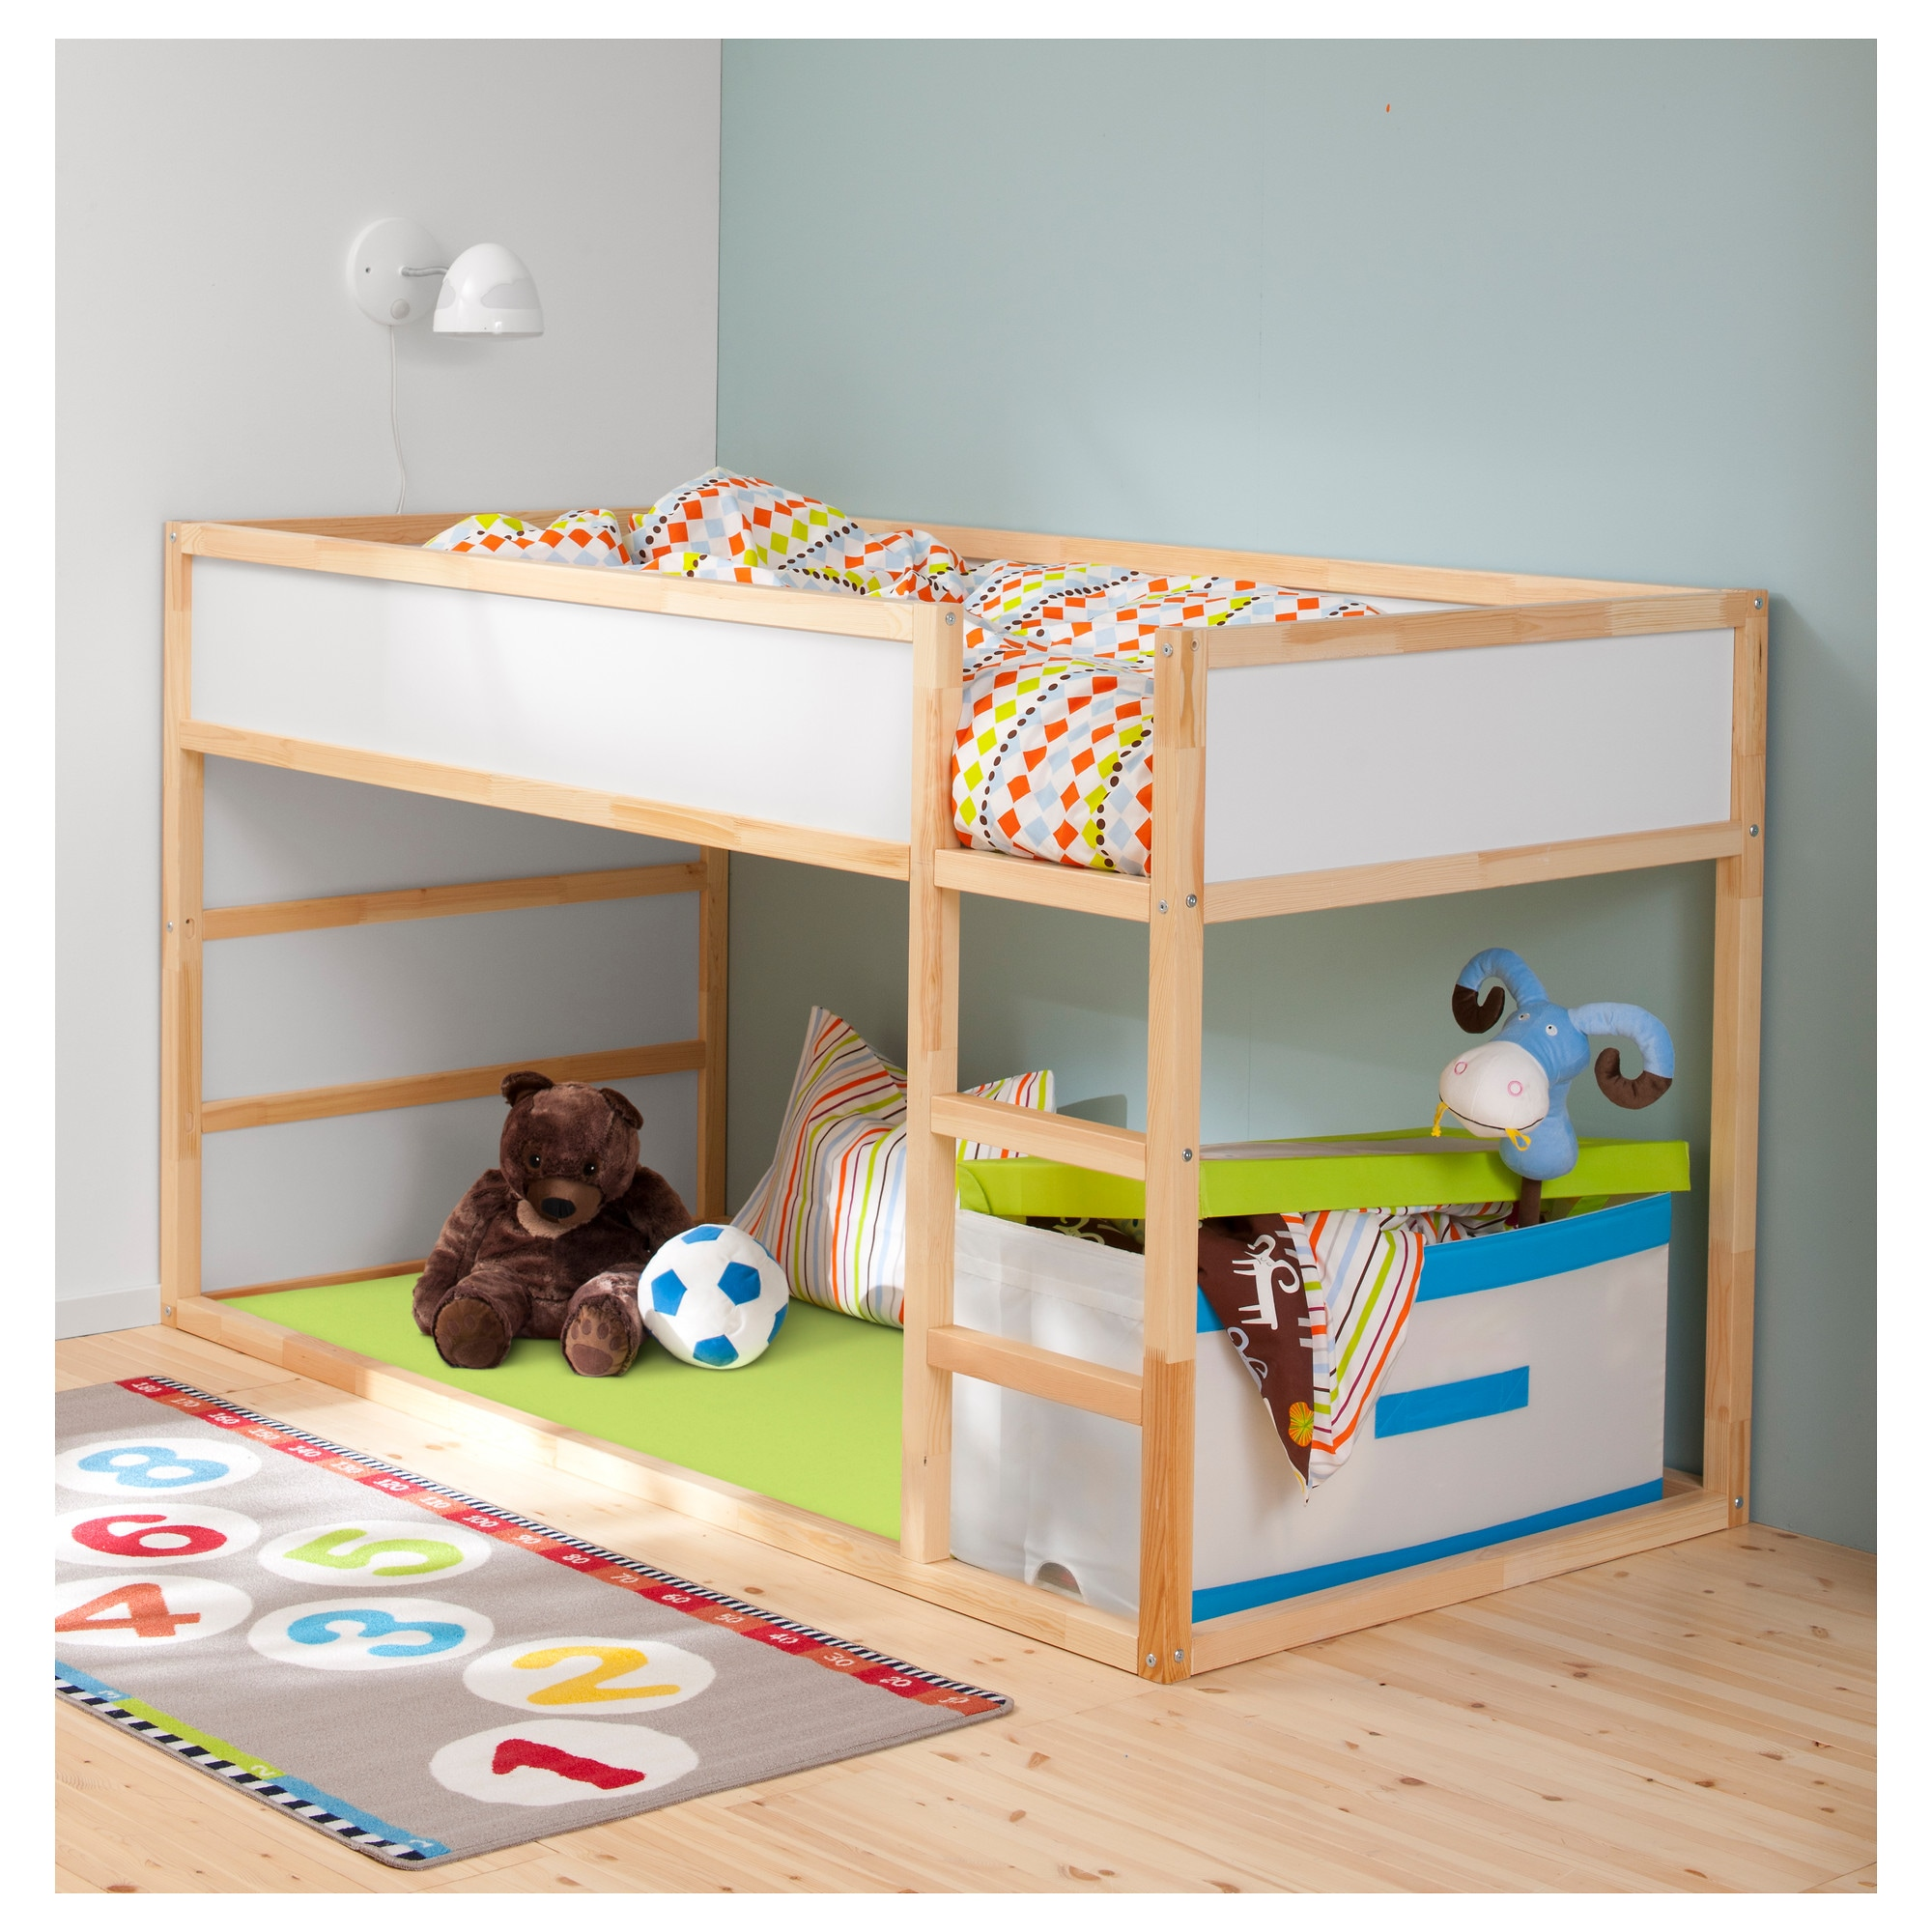 Bunk beds for kids ikea - Bunk Beds For Kids Ikea 0